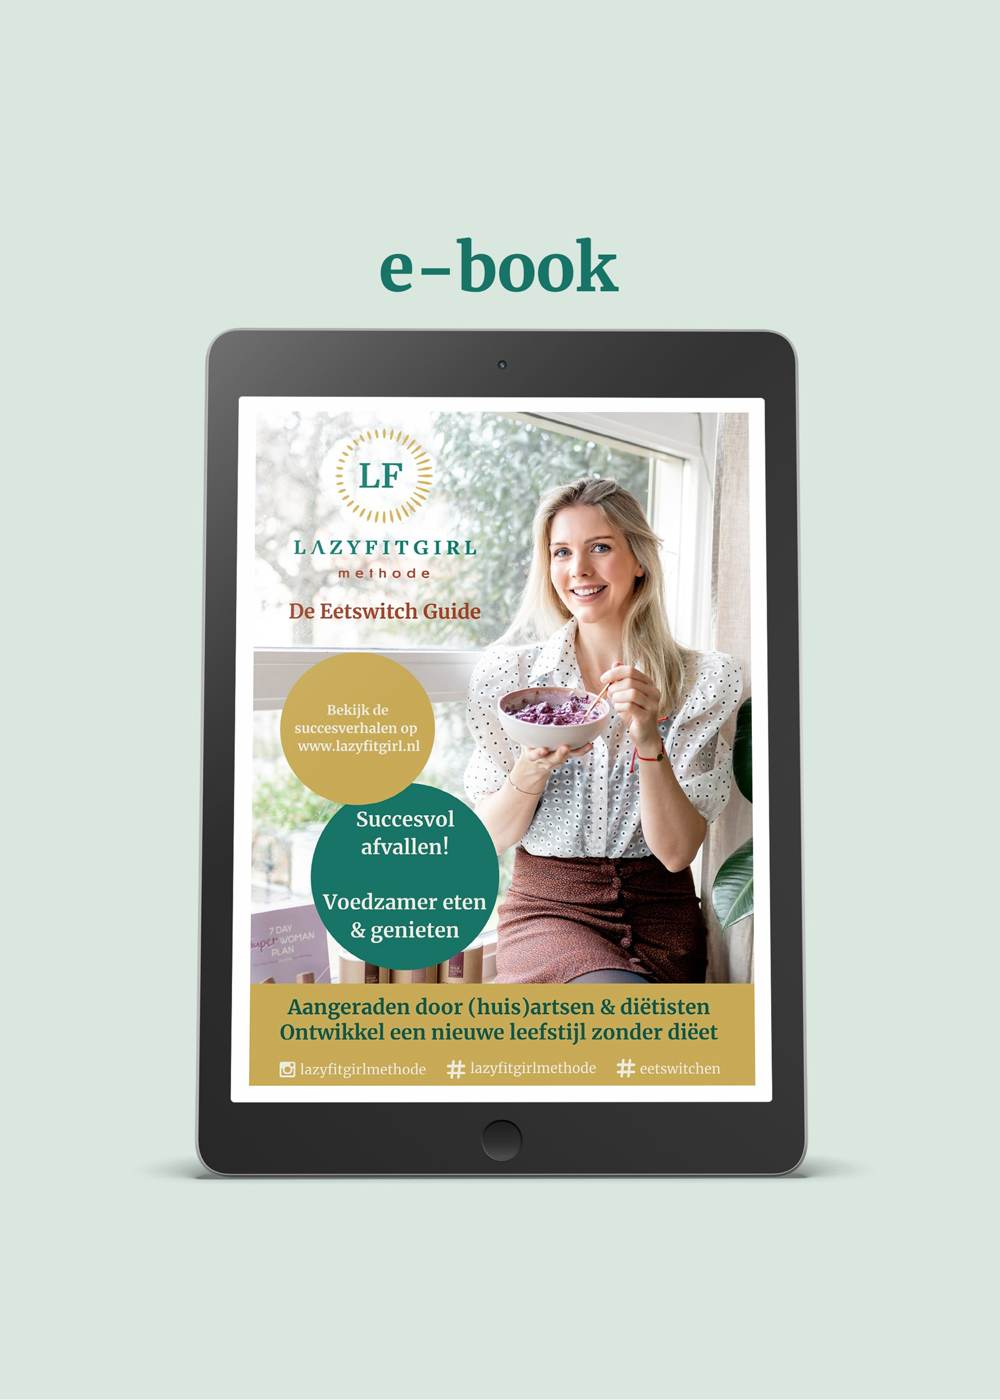 Lazyfitgirl Eetswitch Guide - e-book